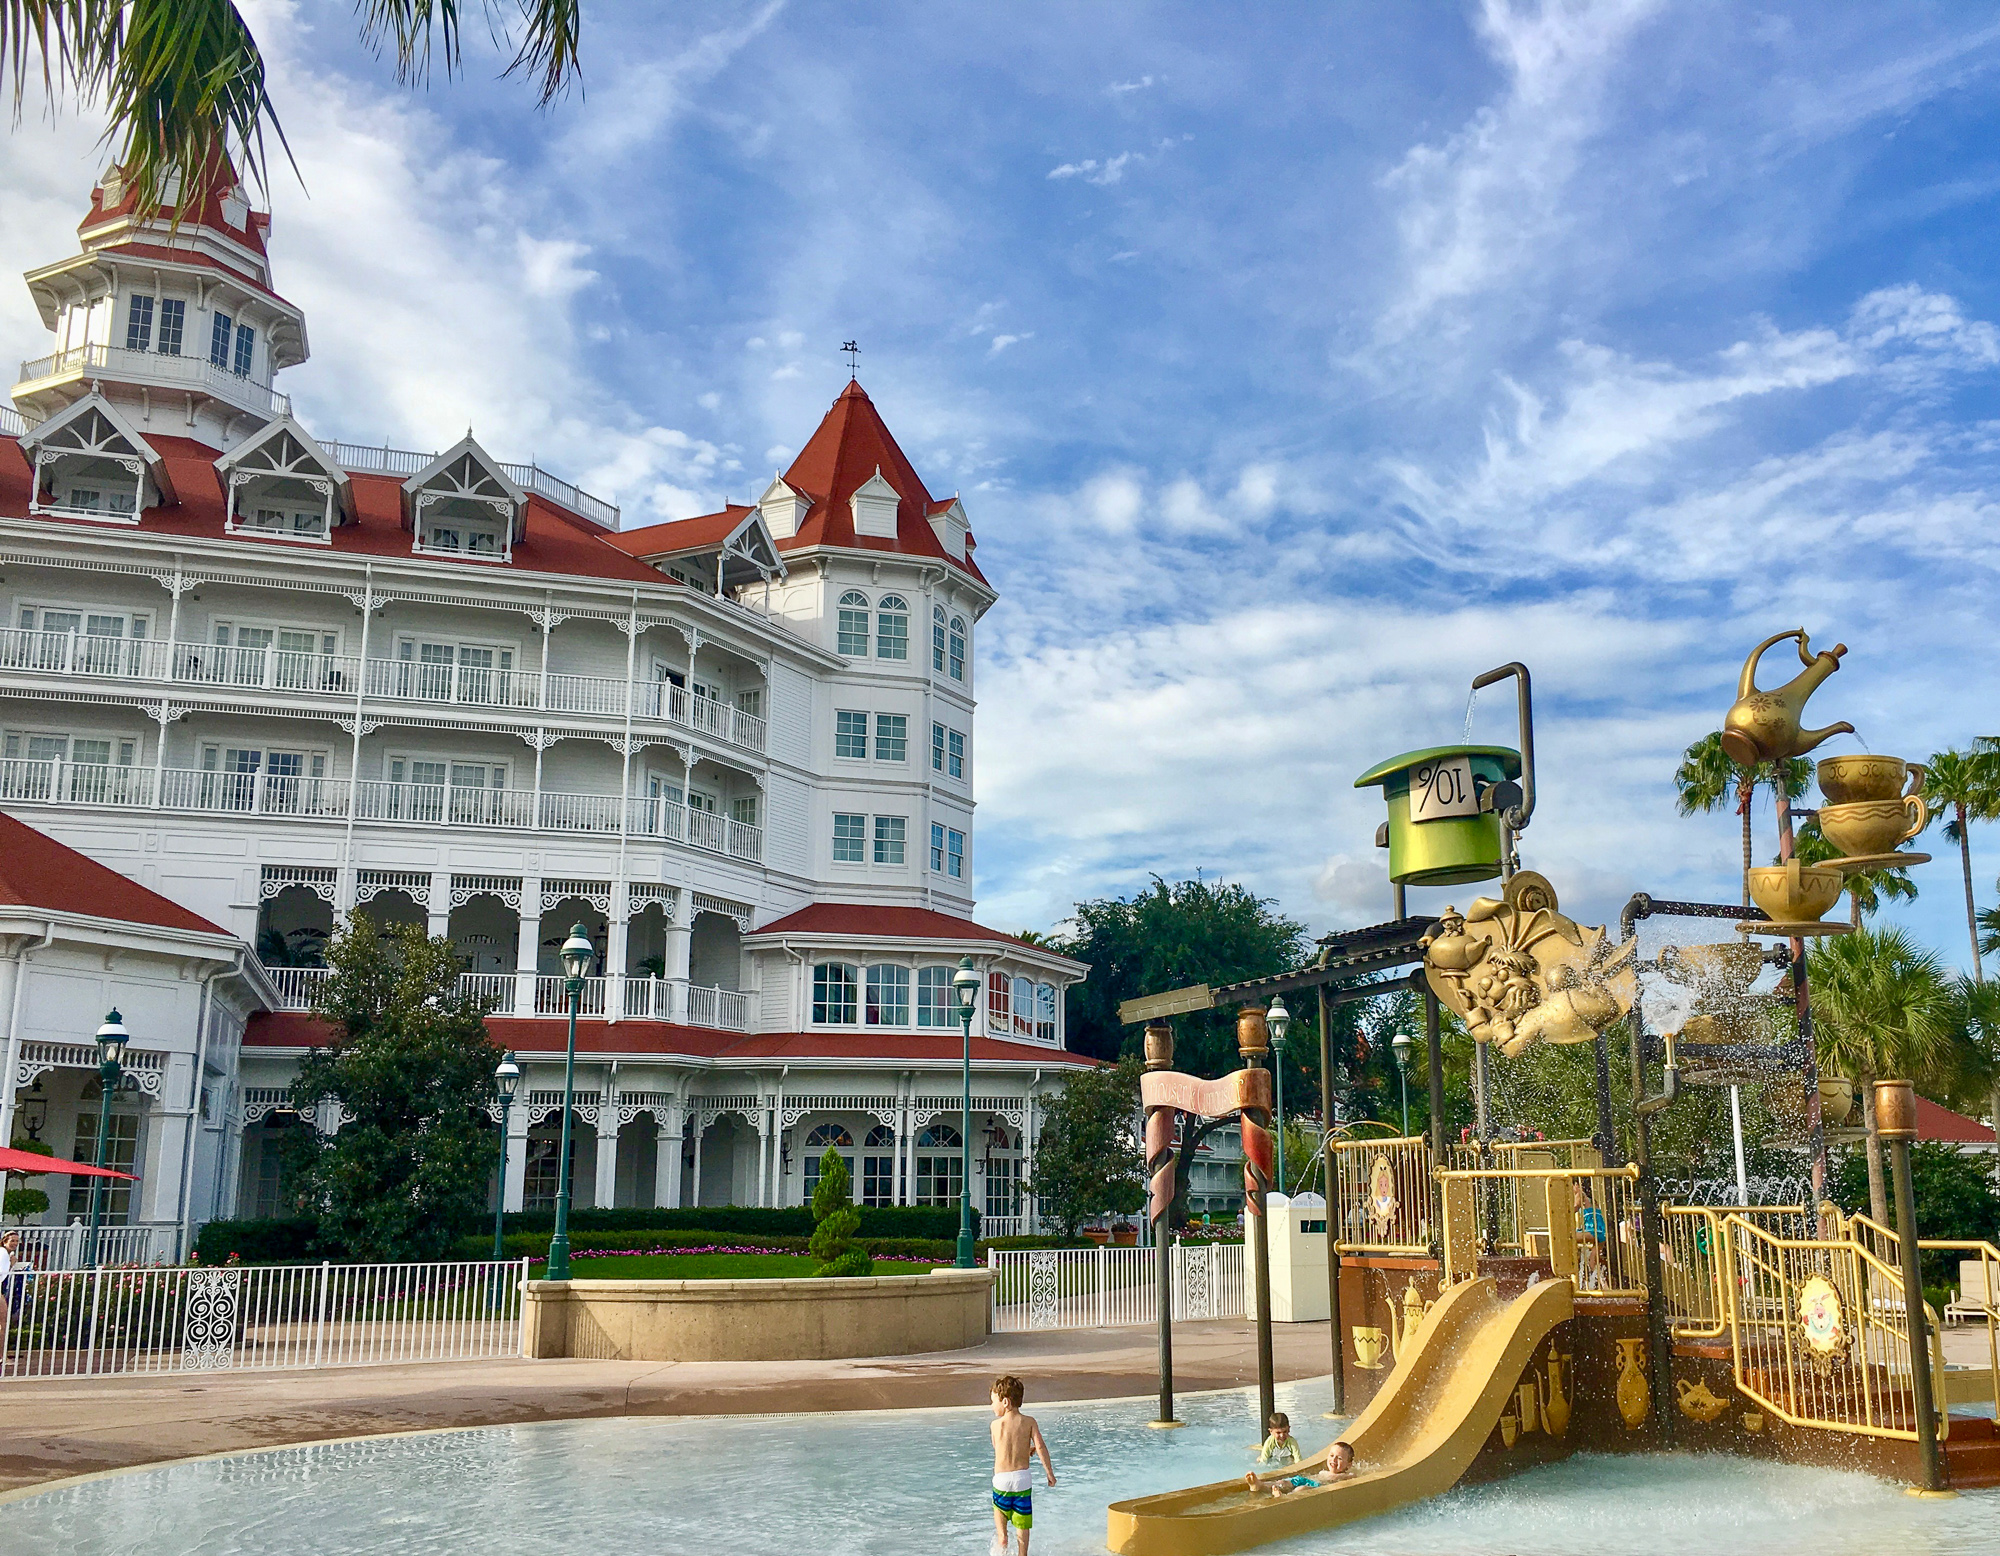 Disney's Grand Floridian splash pad